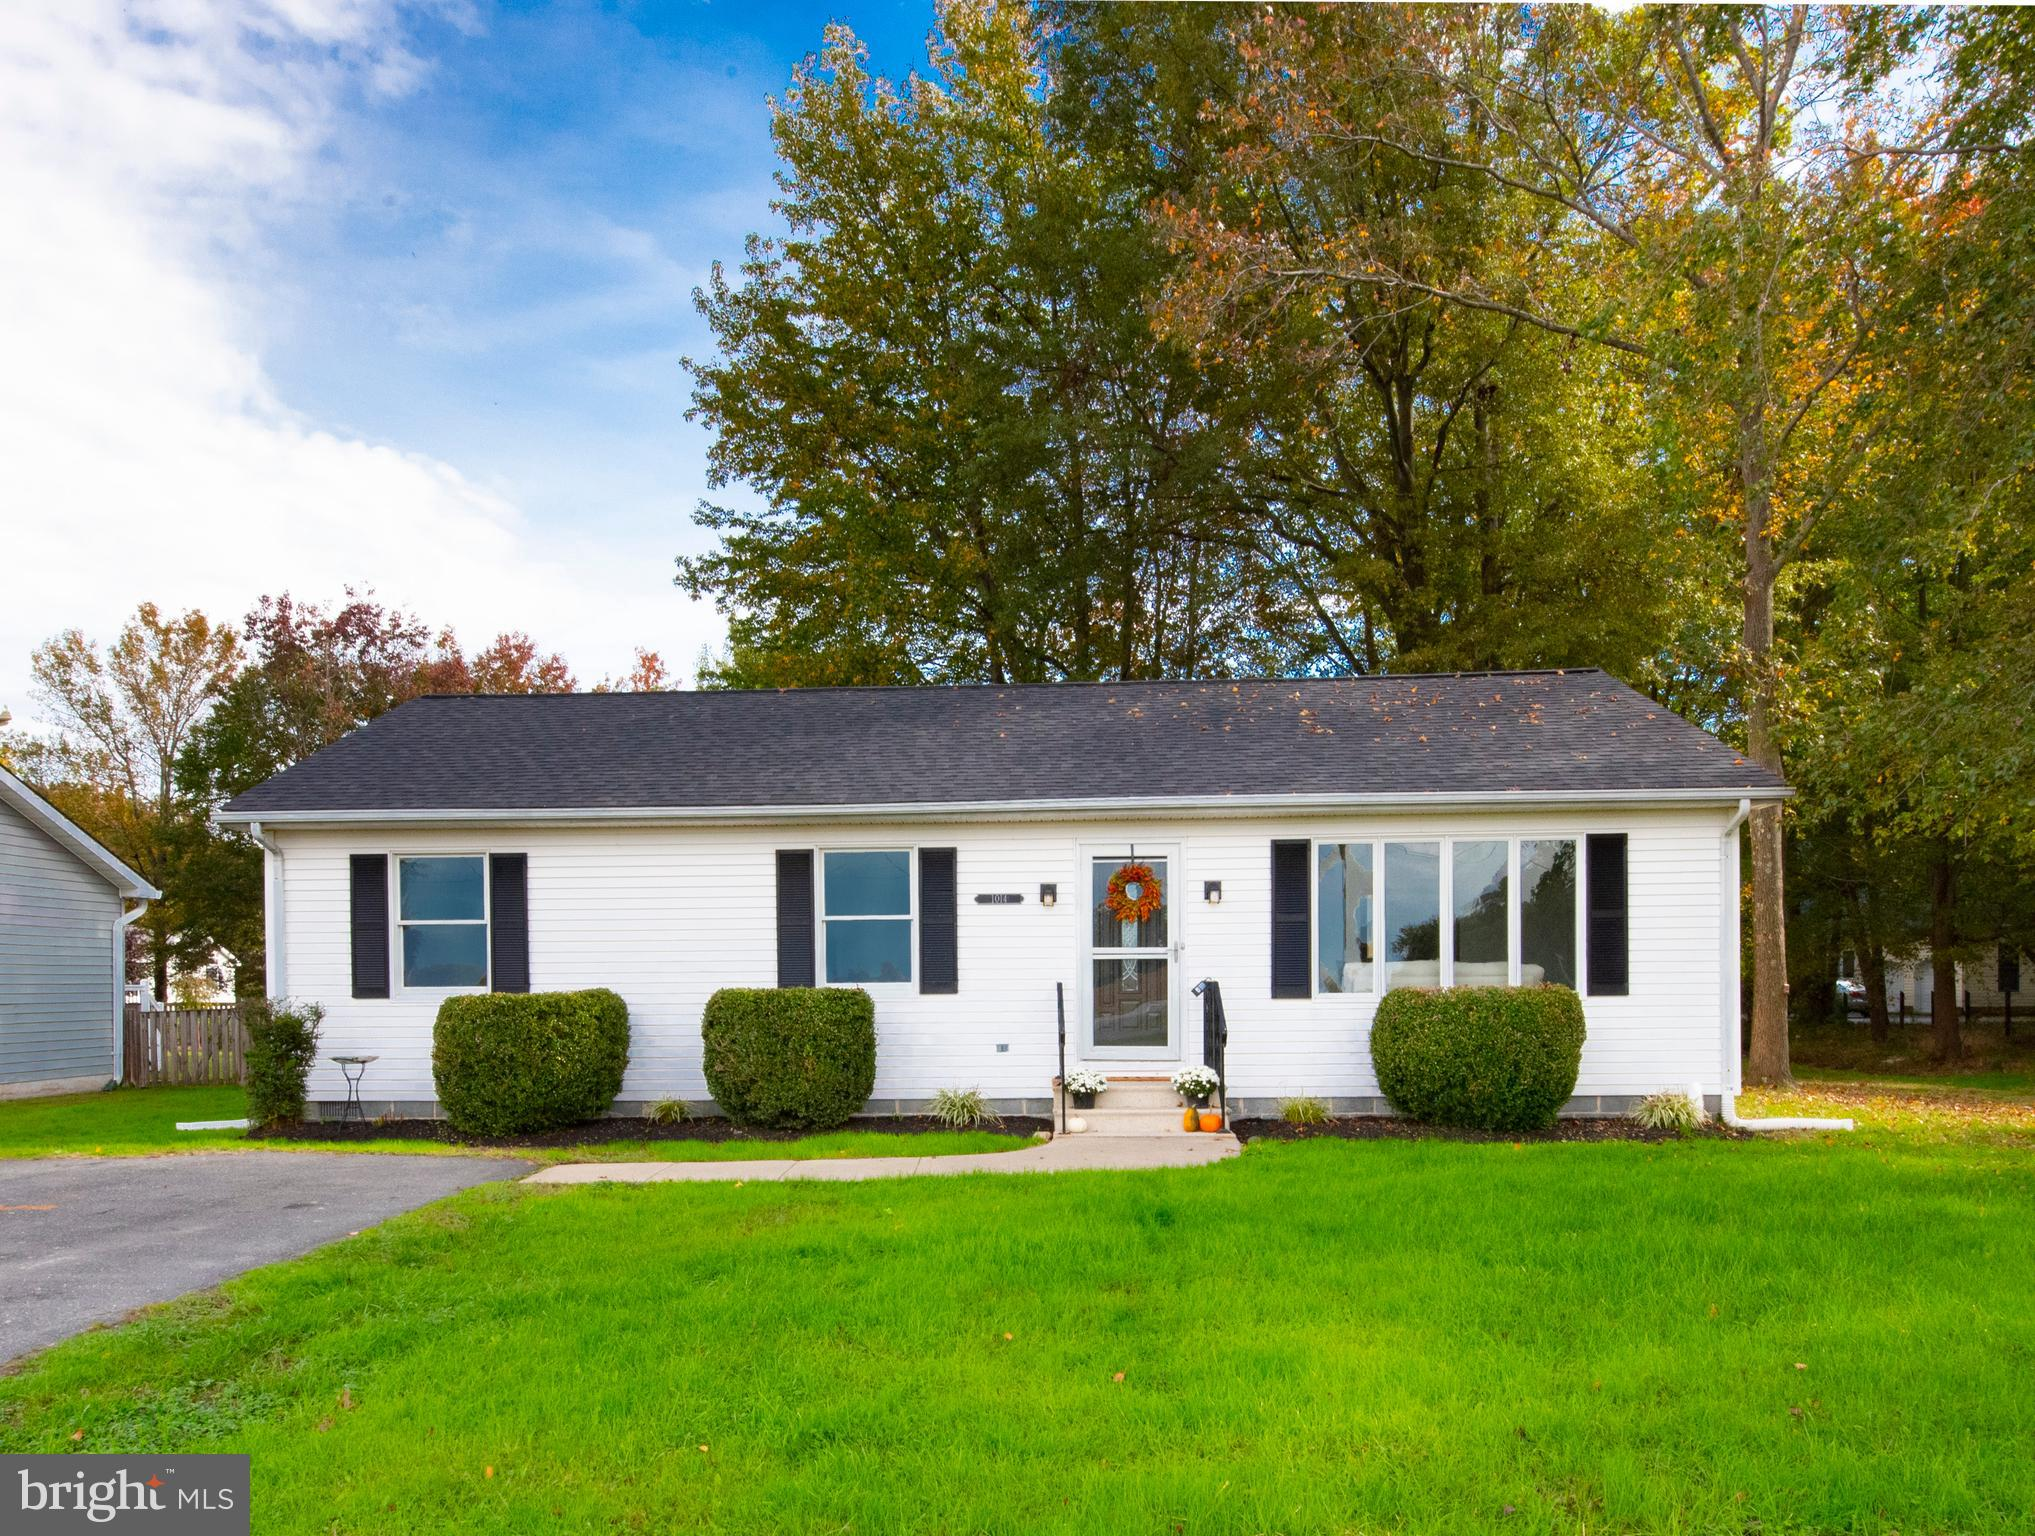 Sought after Cloverfield's community has a freshly updated home, waiting for its NEW owners! This ho